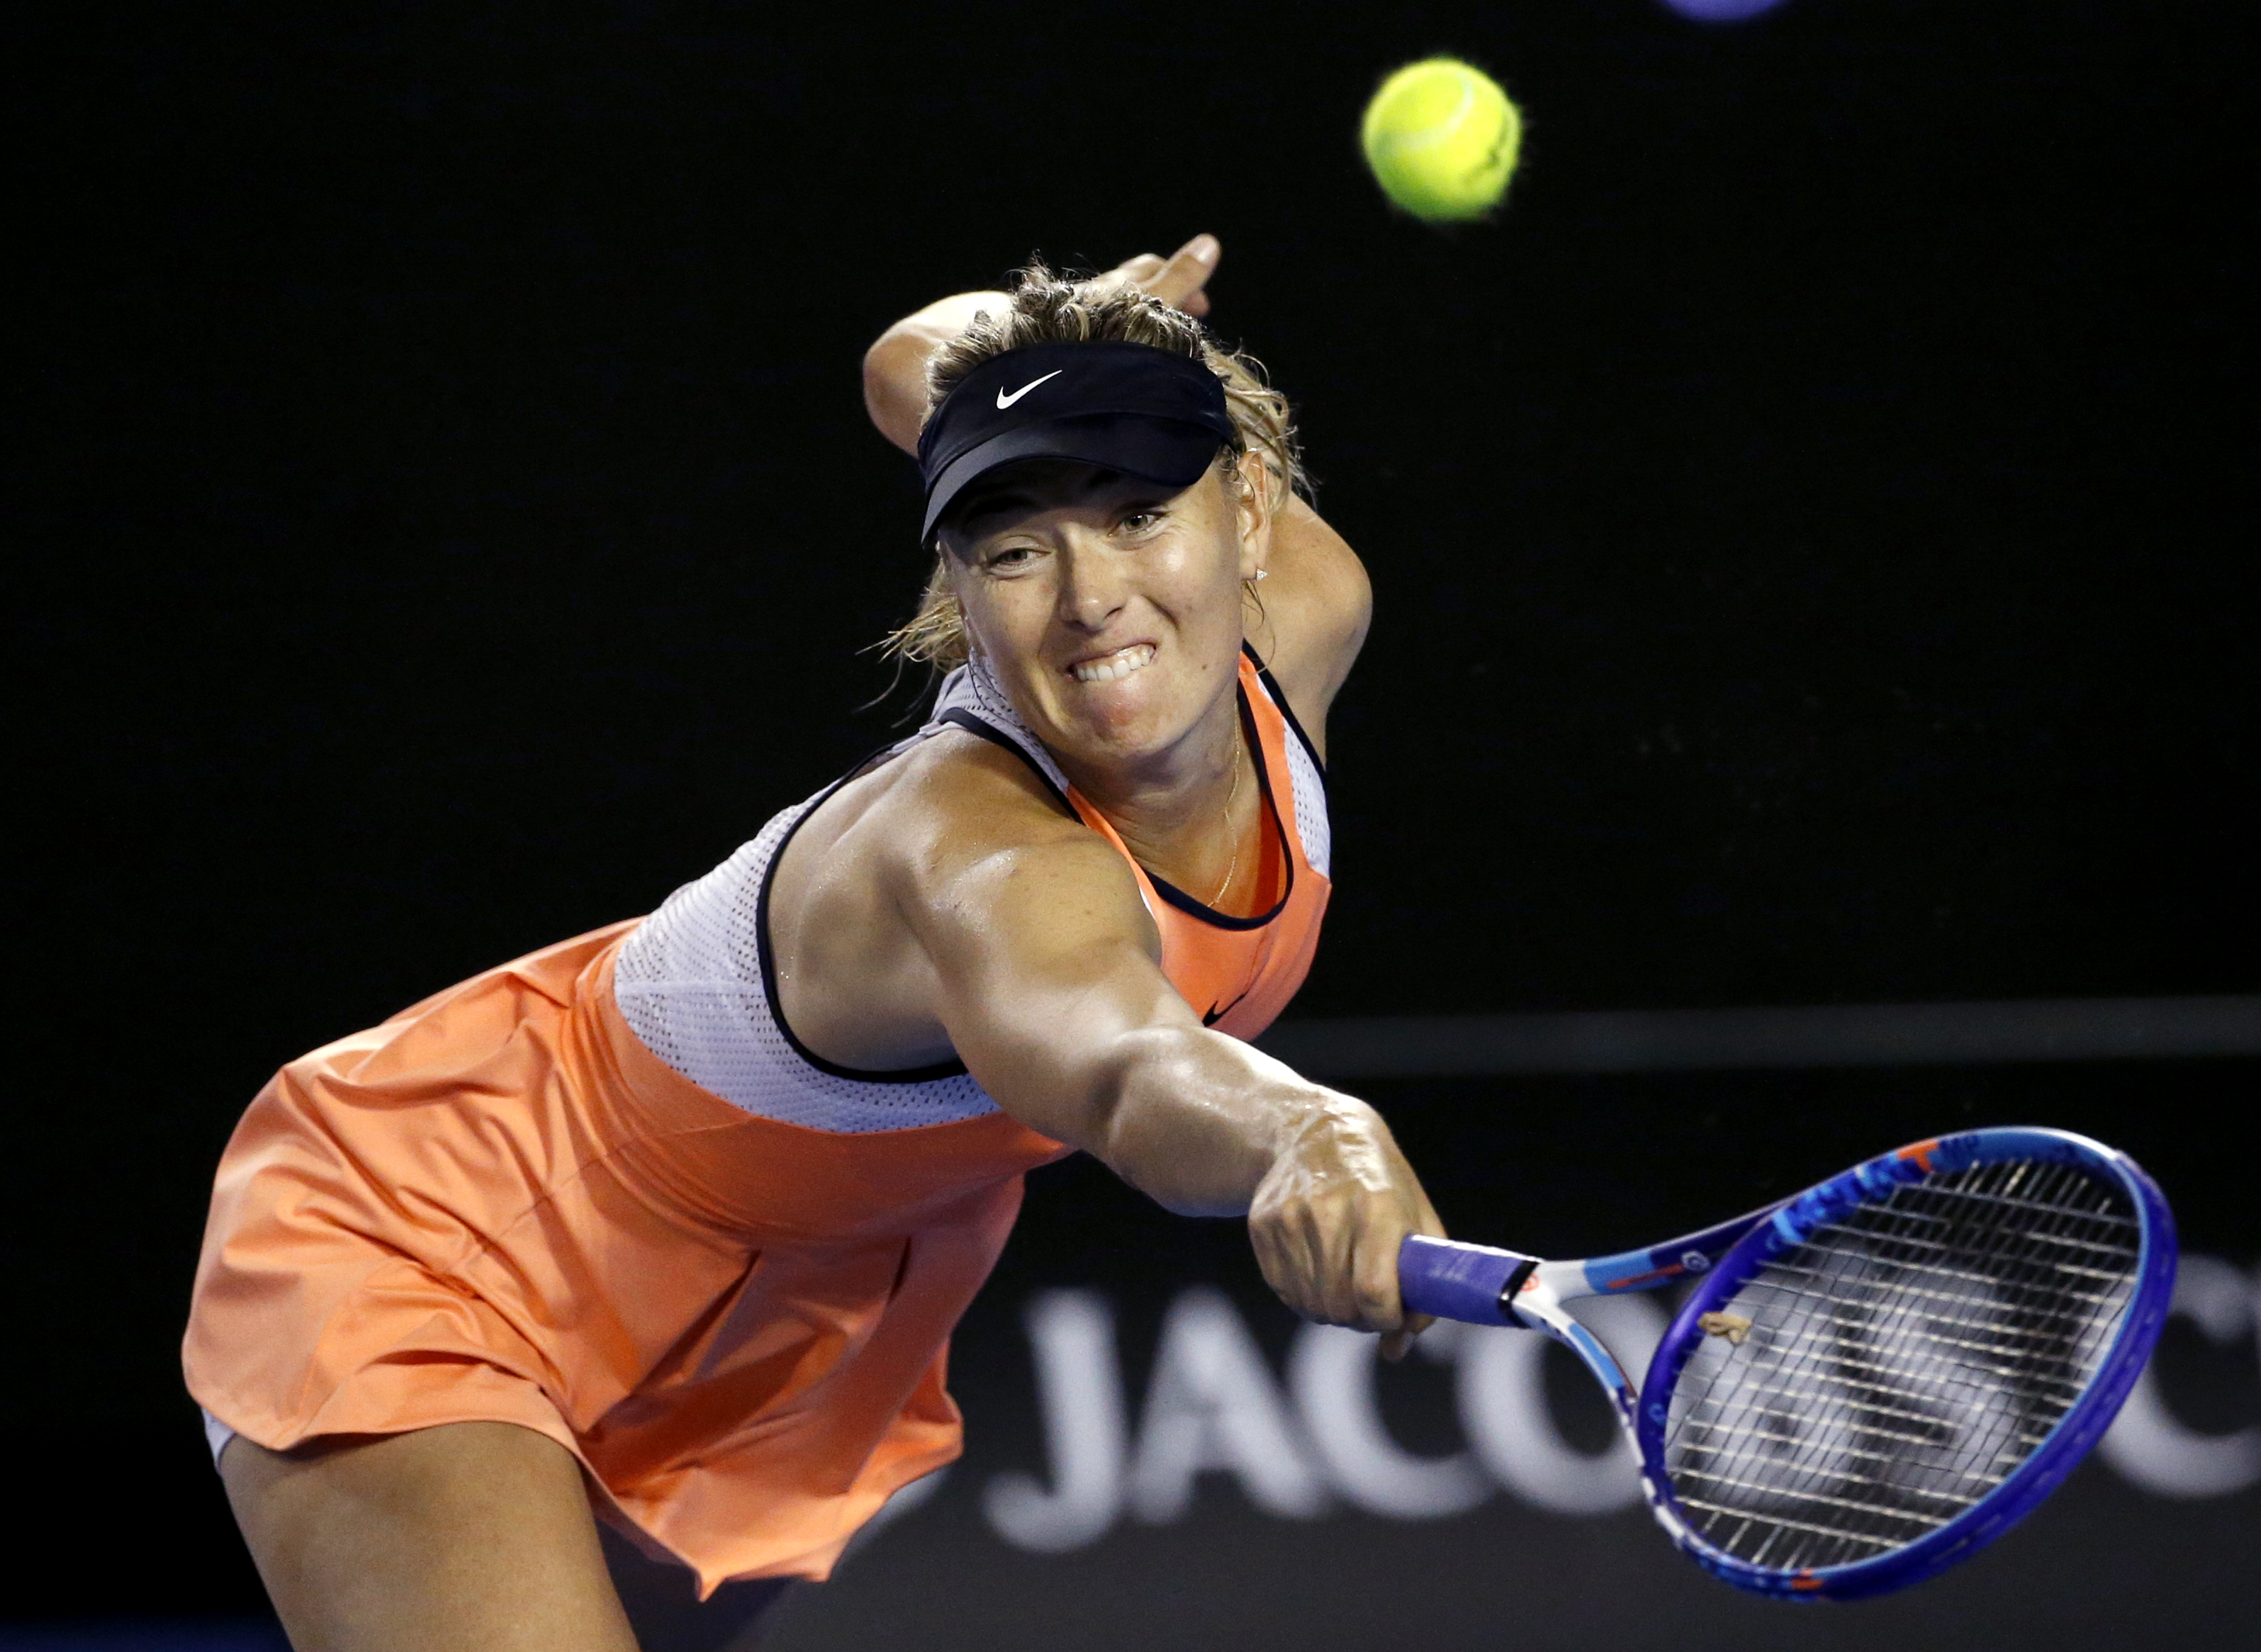 FILE - In this Jan. 20, 2016, file photo, Maria Sharapova of Russia reaches for a backhand return to Aliaksandra Sasnovich of Belarus during their second round match at the Australian Open tennis championships in Melbourne, Australia. Sharapova has called